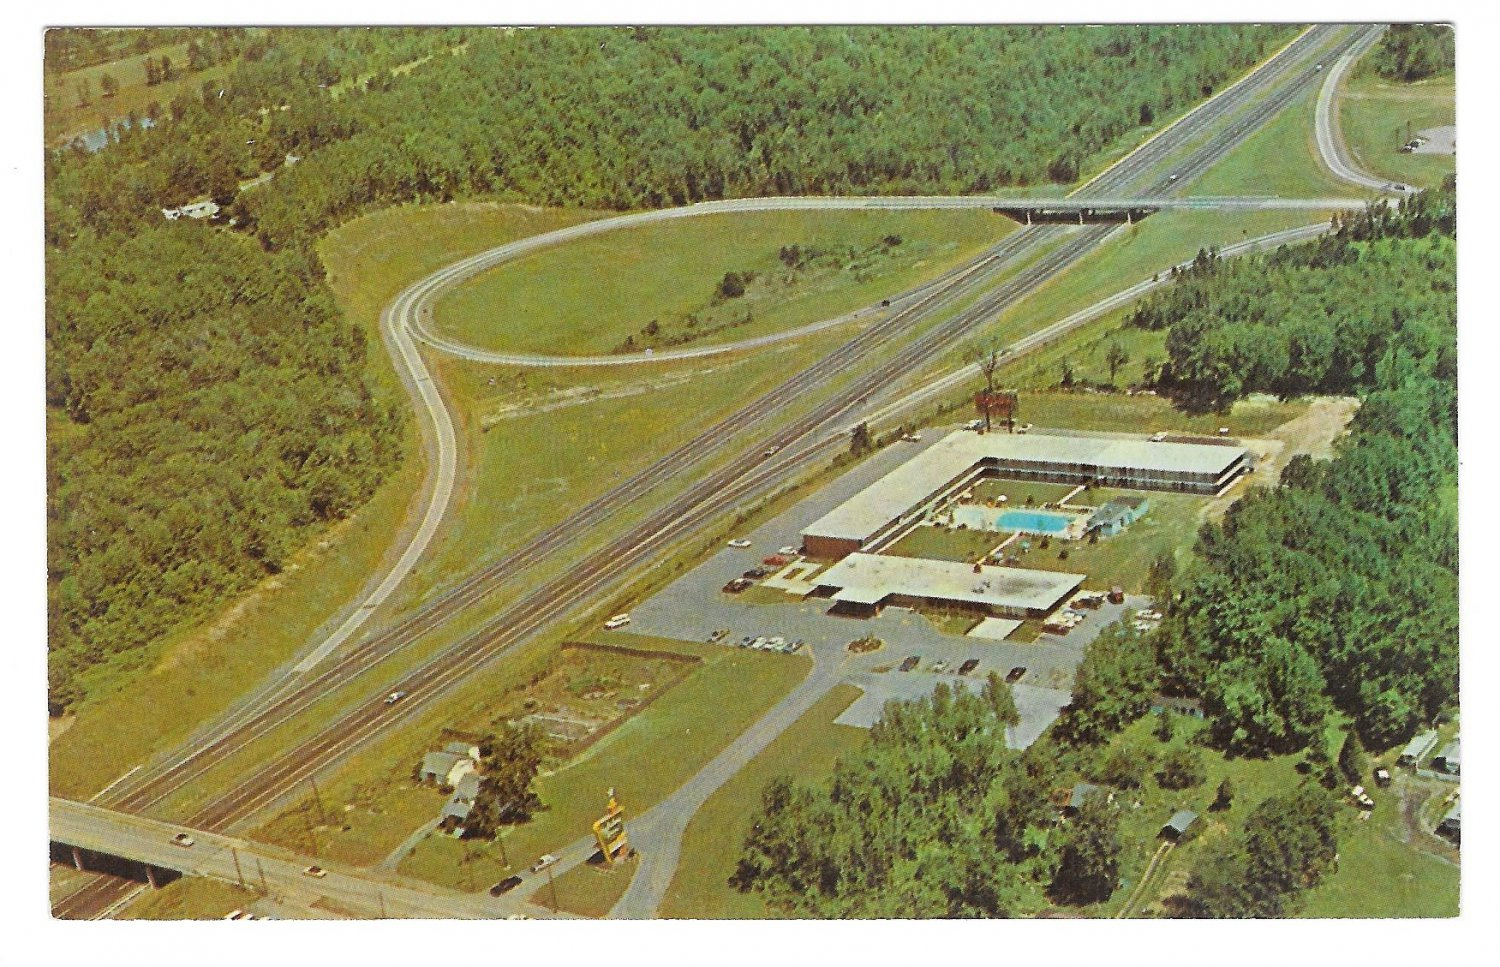 Holiday Inn Motel Newburgh New York Aerial View Vintage Hotel Postcard